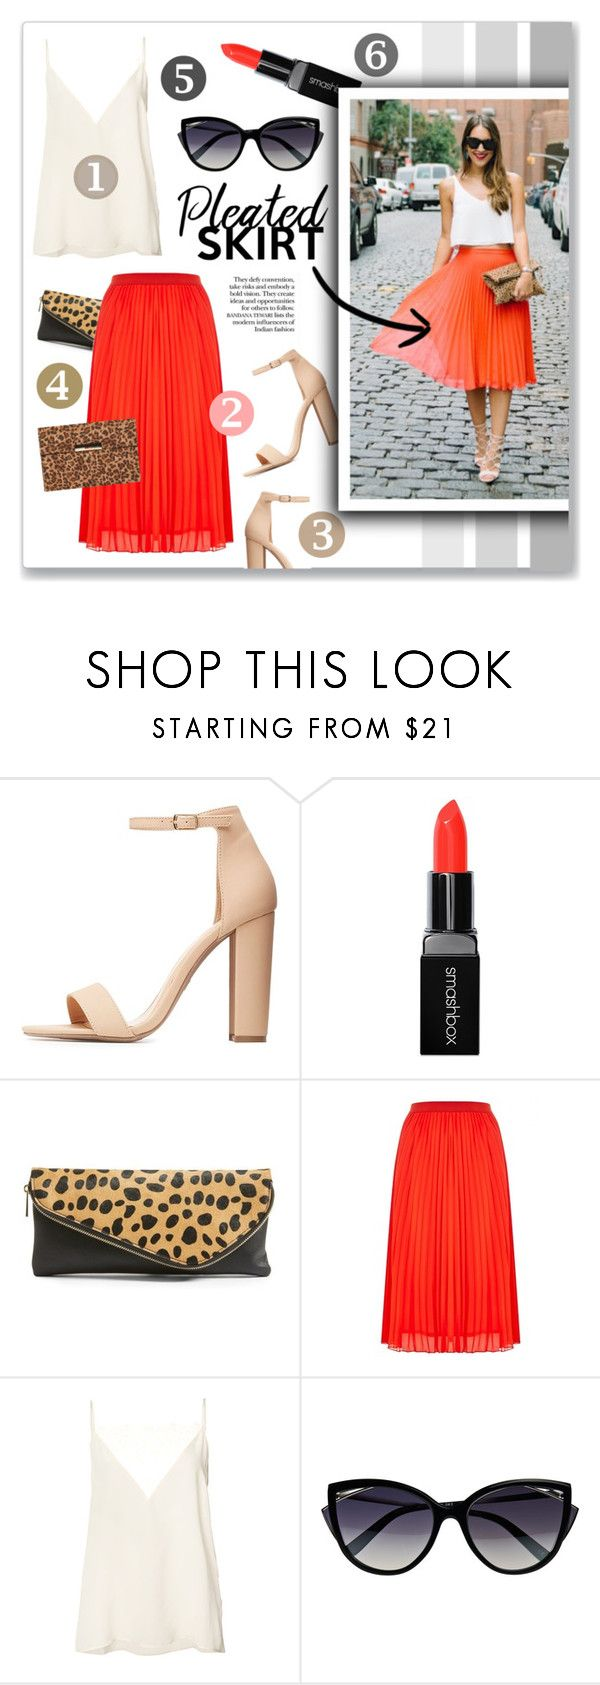 """""""Get the Look: Bright Pleated Skirt"""" by singingintherain-788 ❤ liked on Polyvore featuring Charlotte Russe, Smashbox, Sole Society, Anine Bing, La Perla, Dorothy Perkins, brights, NYC, summerstyle and pleats"""